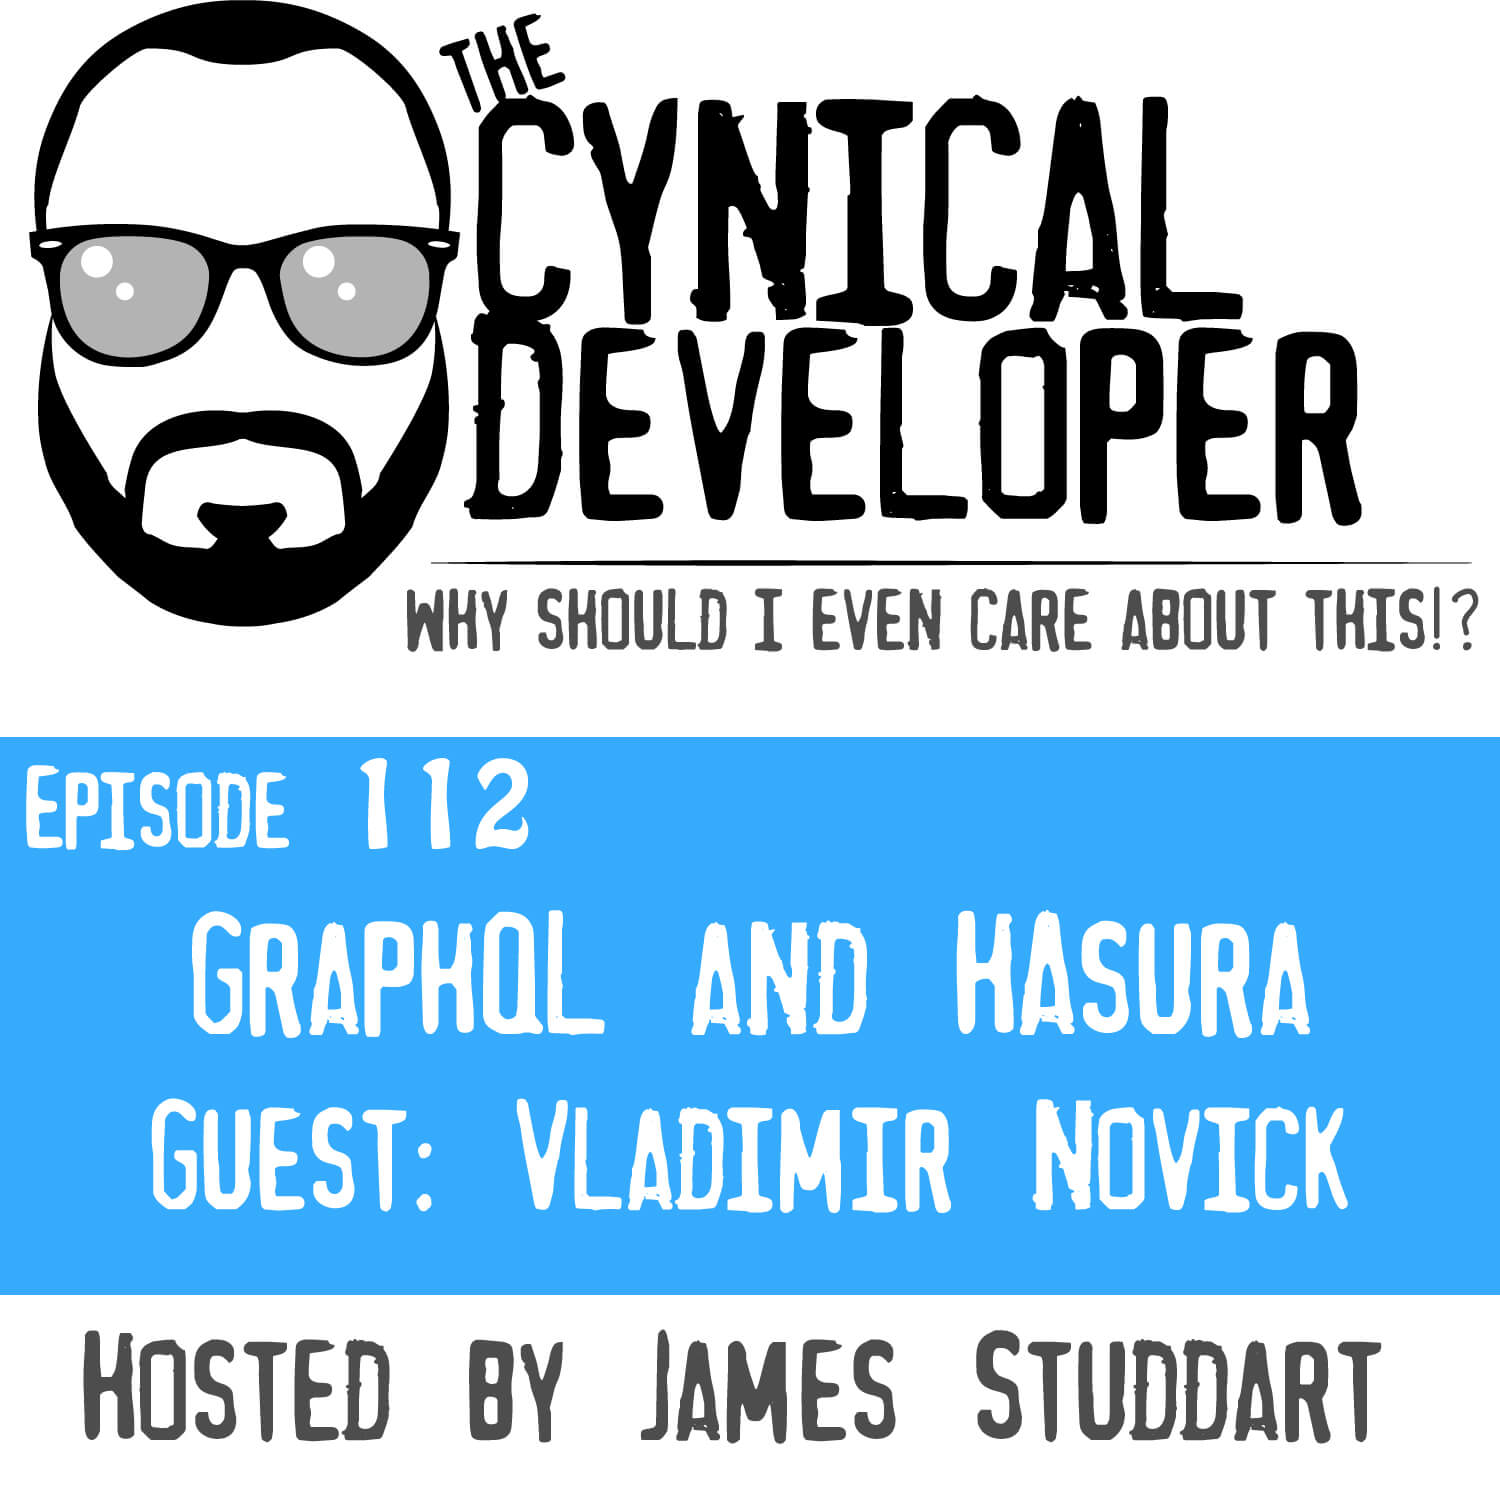 Episode 112 - GraphQL and Hasura